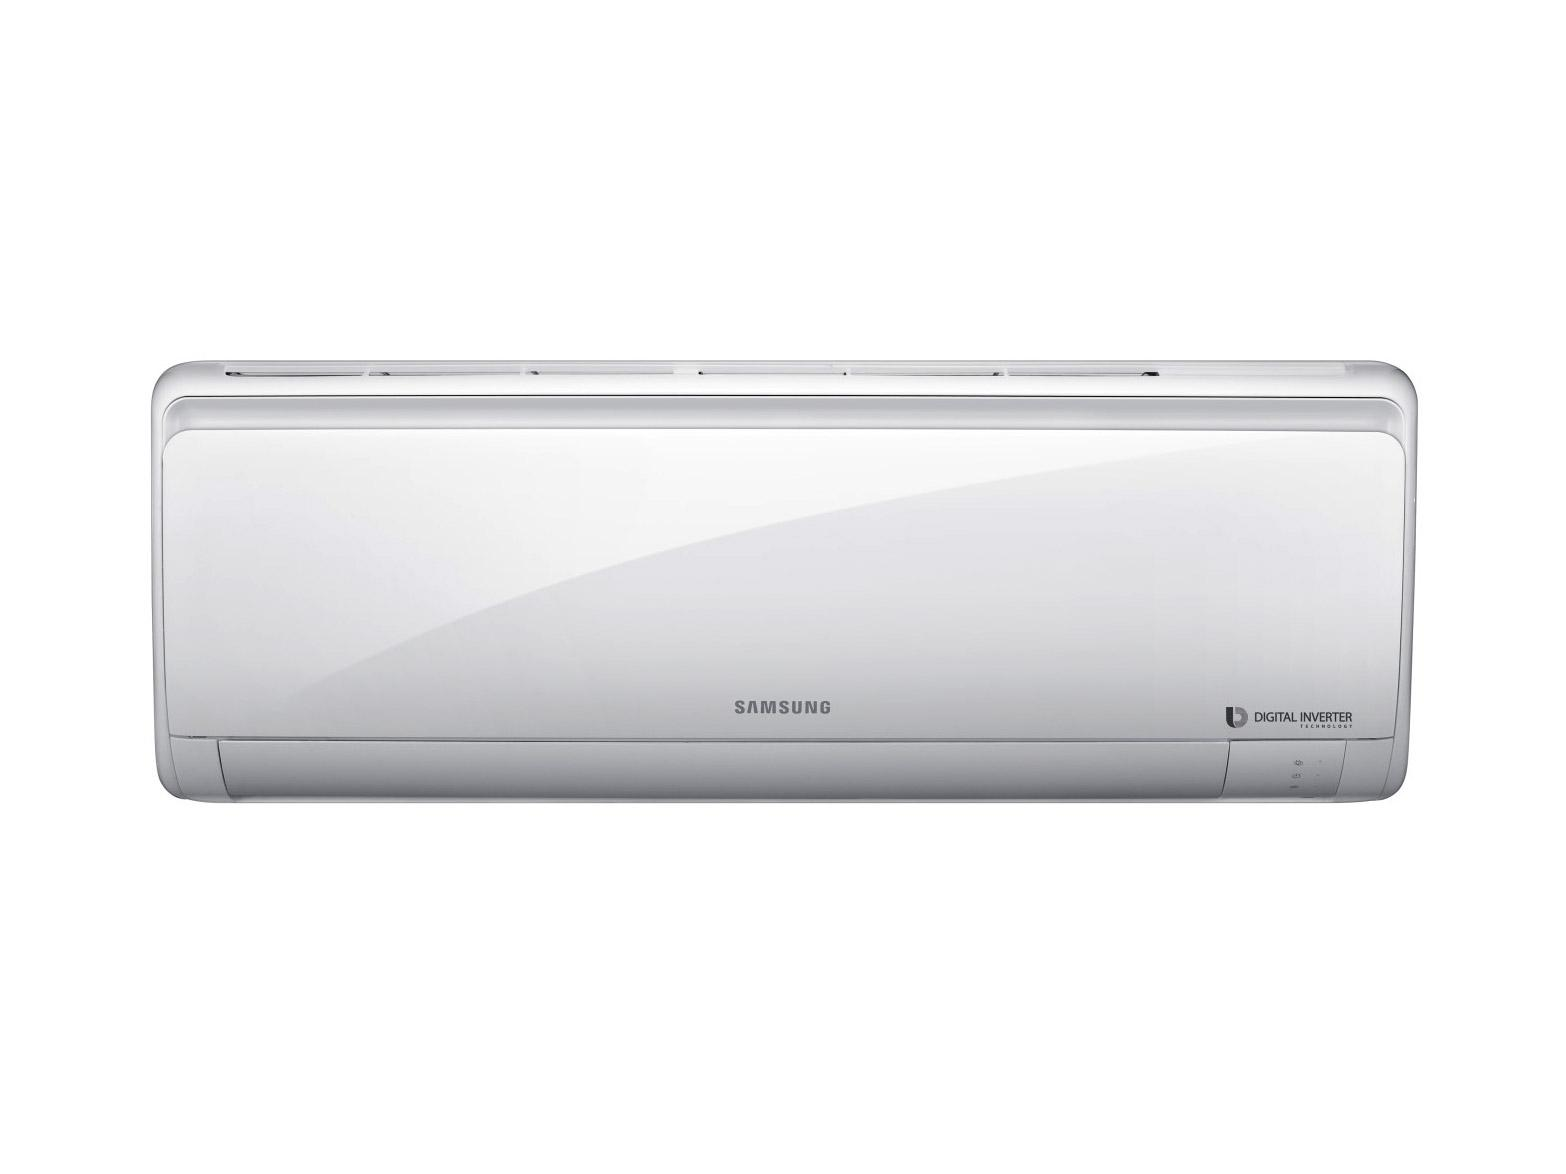 #313136 Samsung Inverter Air Conditioner For Sale Samsung Aircon Highly Rated 7829 Air Conditioner Installation Johannesburg wallpapers with 1566x1174 px on helpvideos.info - Air Conditioners, Air Coolers and more